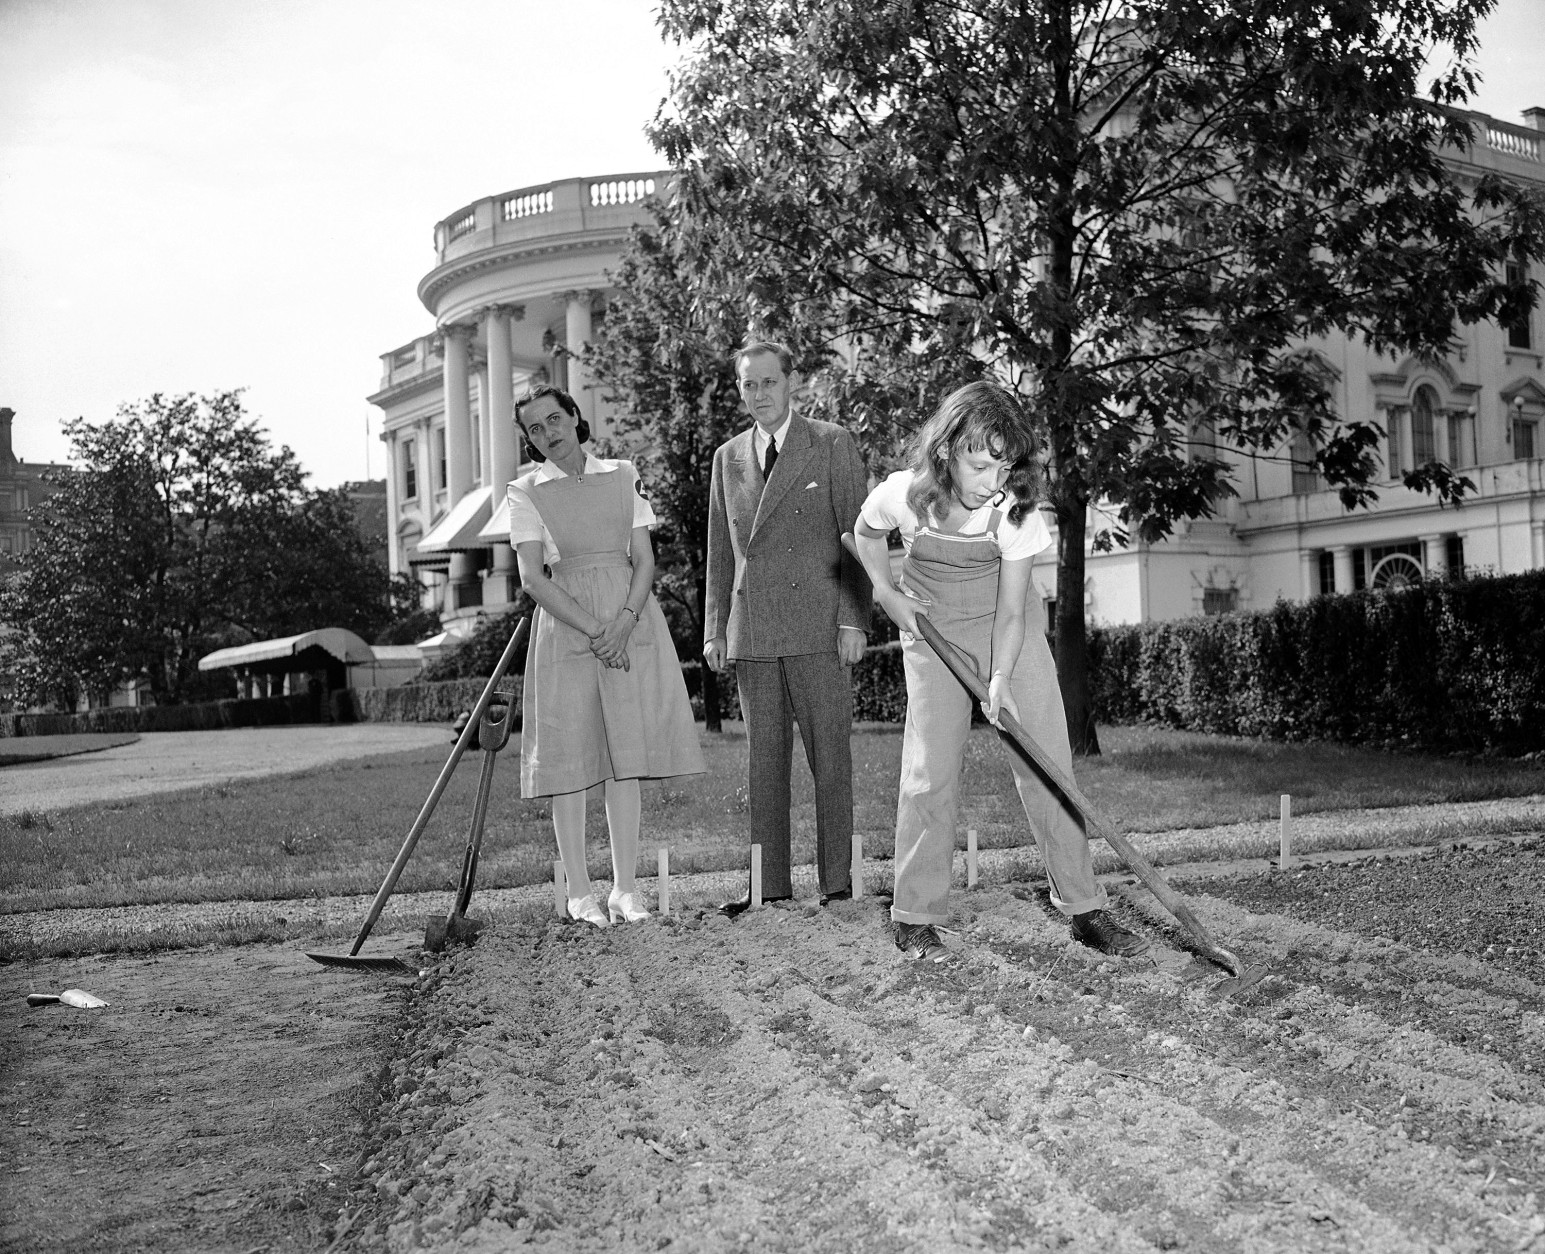 When Harry Hopkins and his wife, who live at the White House with his daughter, Diana, strolled out on the White House lawn in Washington on May 10, 1943, they found Diana, garbed in overalls, busily hoeing in her victory garden. Mrs. Hopkins had just returned from duty as a volunteer nurse and still was wearing her uniform. (AP Photo)